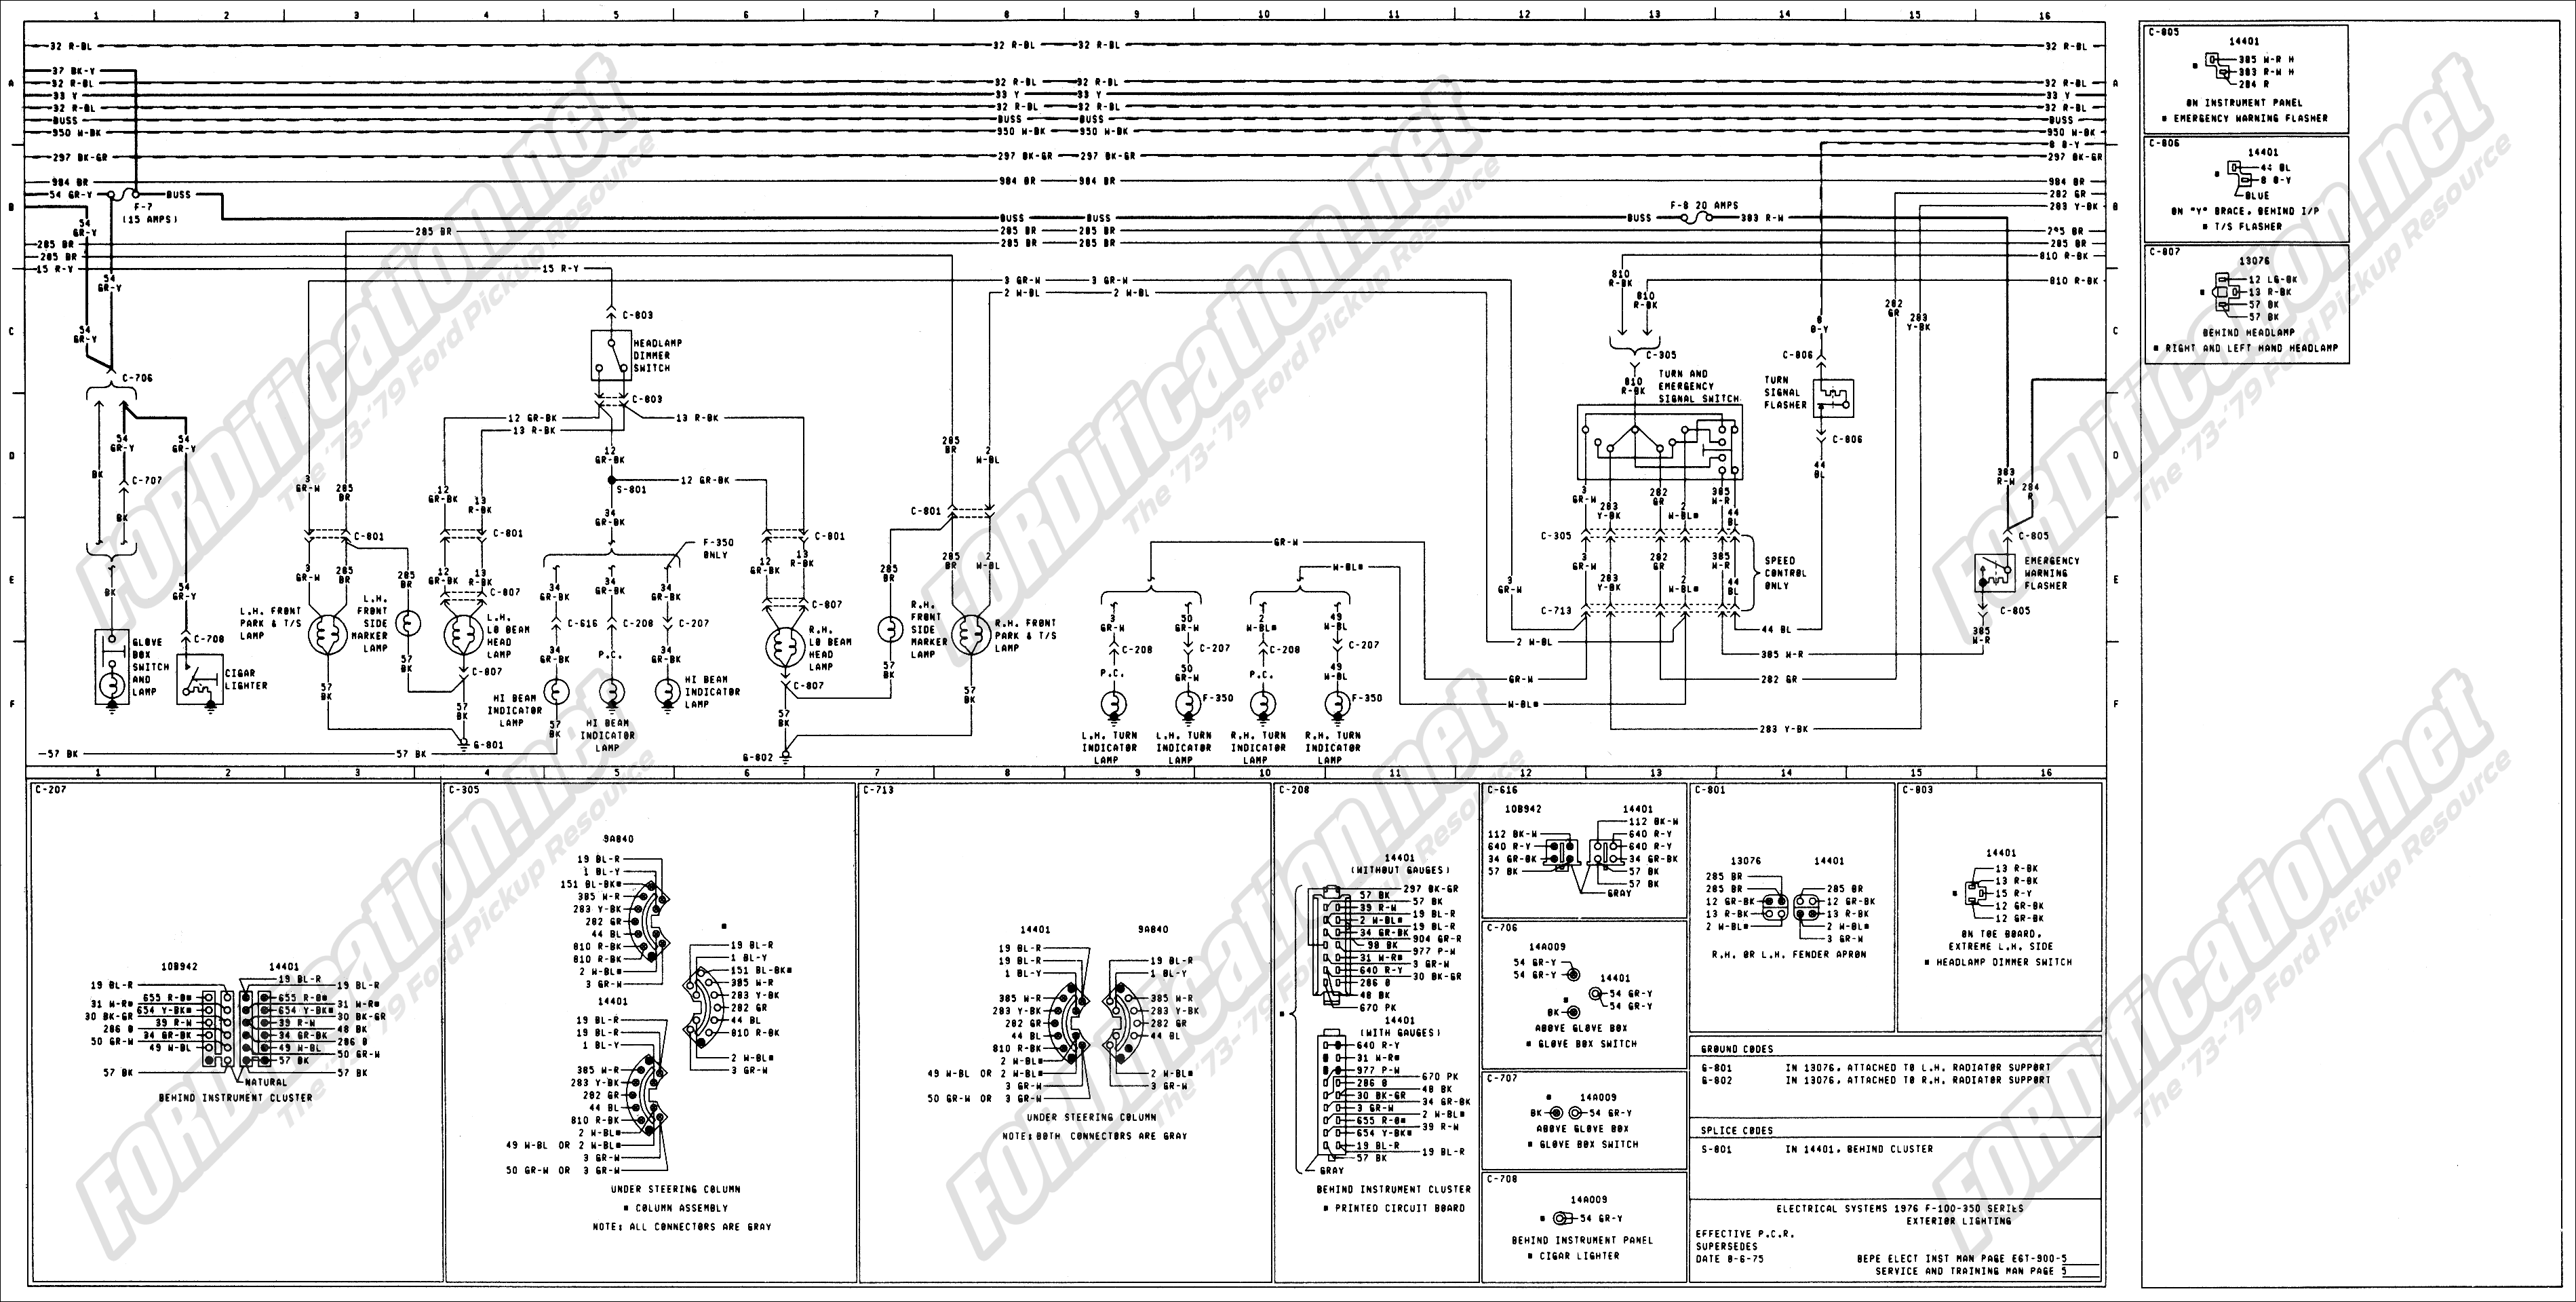 1973 F100 Turn Signal Wiring Diagram Free Download Great 1950 Ford 1979 Truck Diagrams Schematics Fordification Net Rh E350